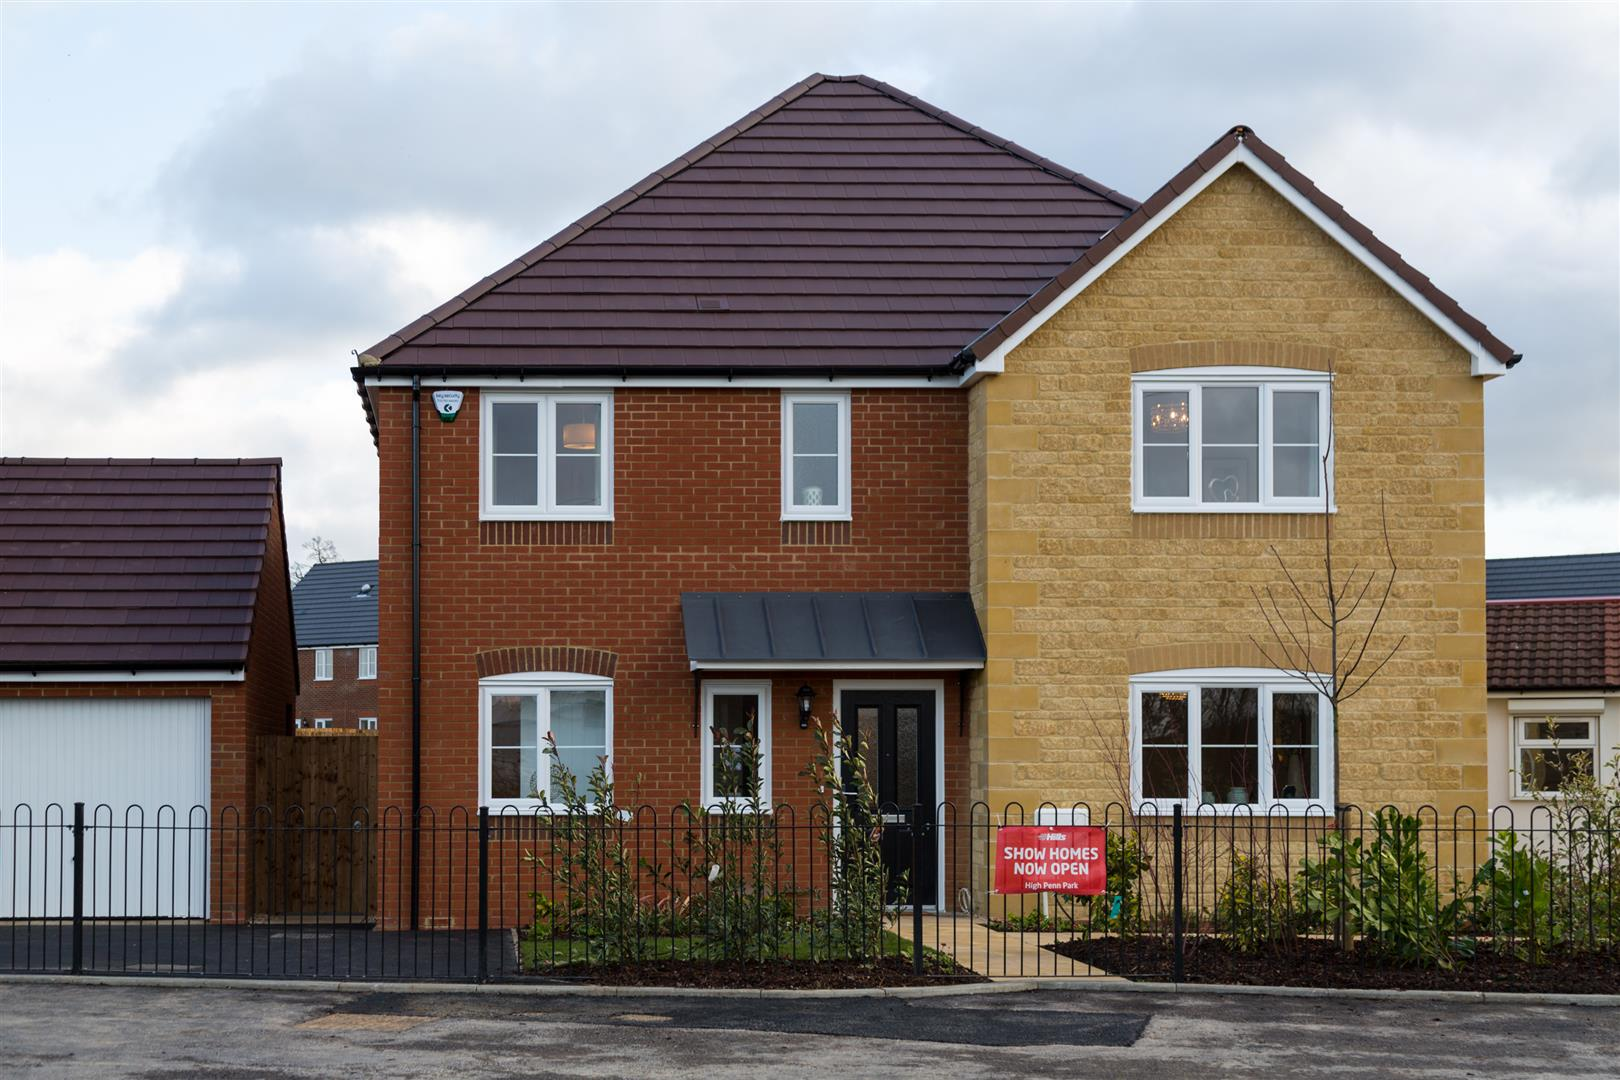 4 Bedrooms Detached House for sale in High Penn Park